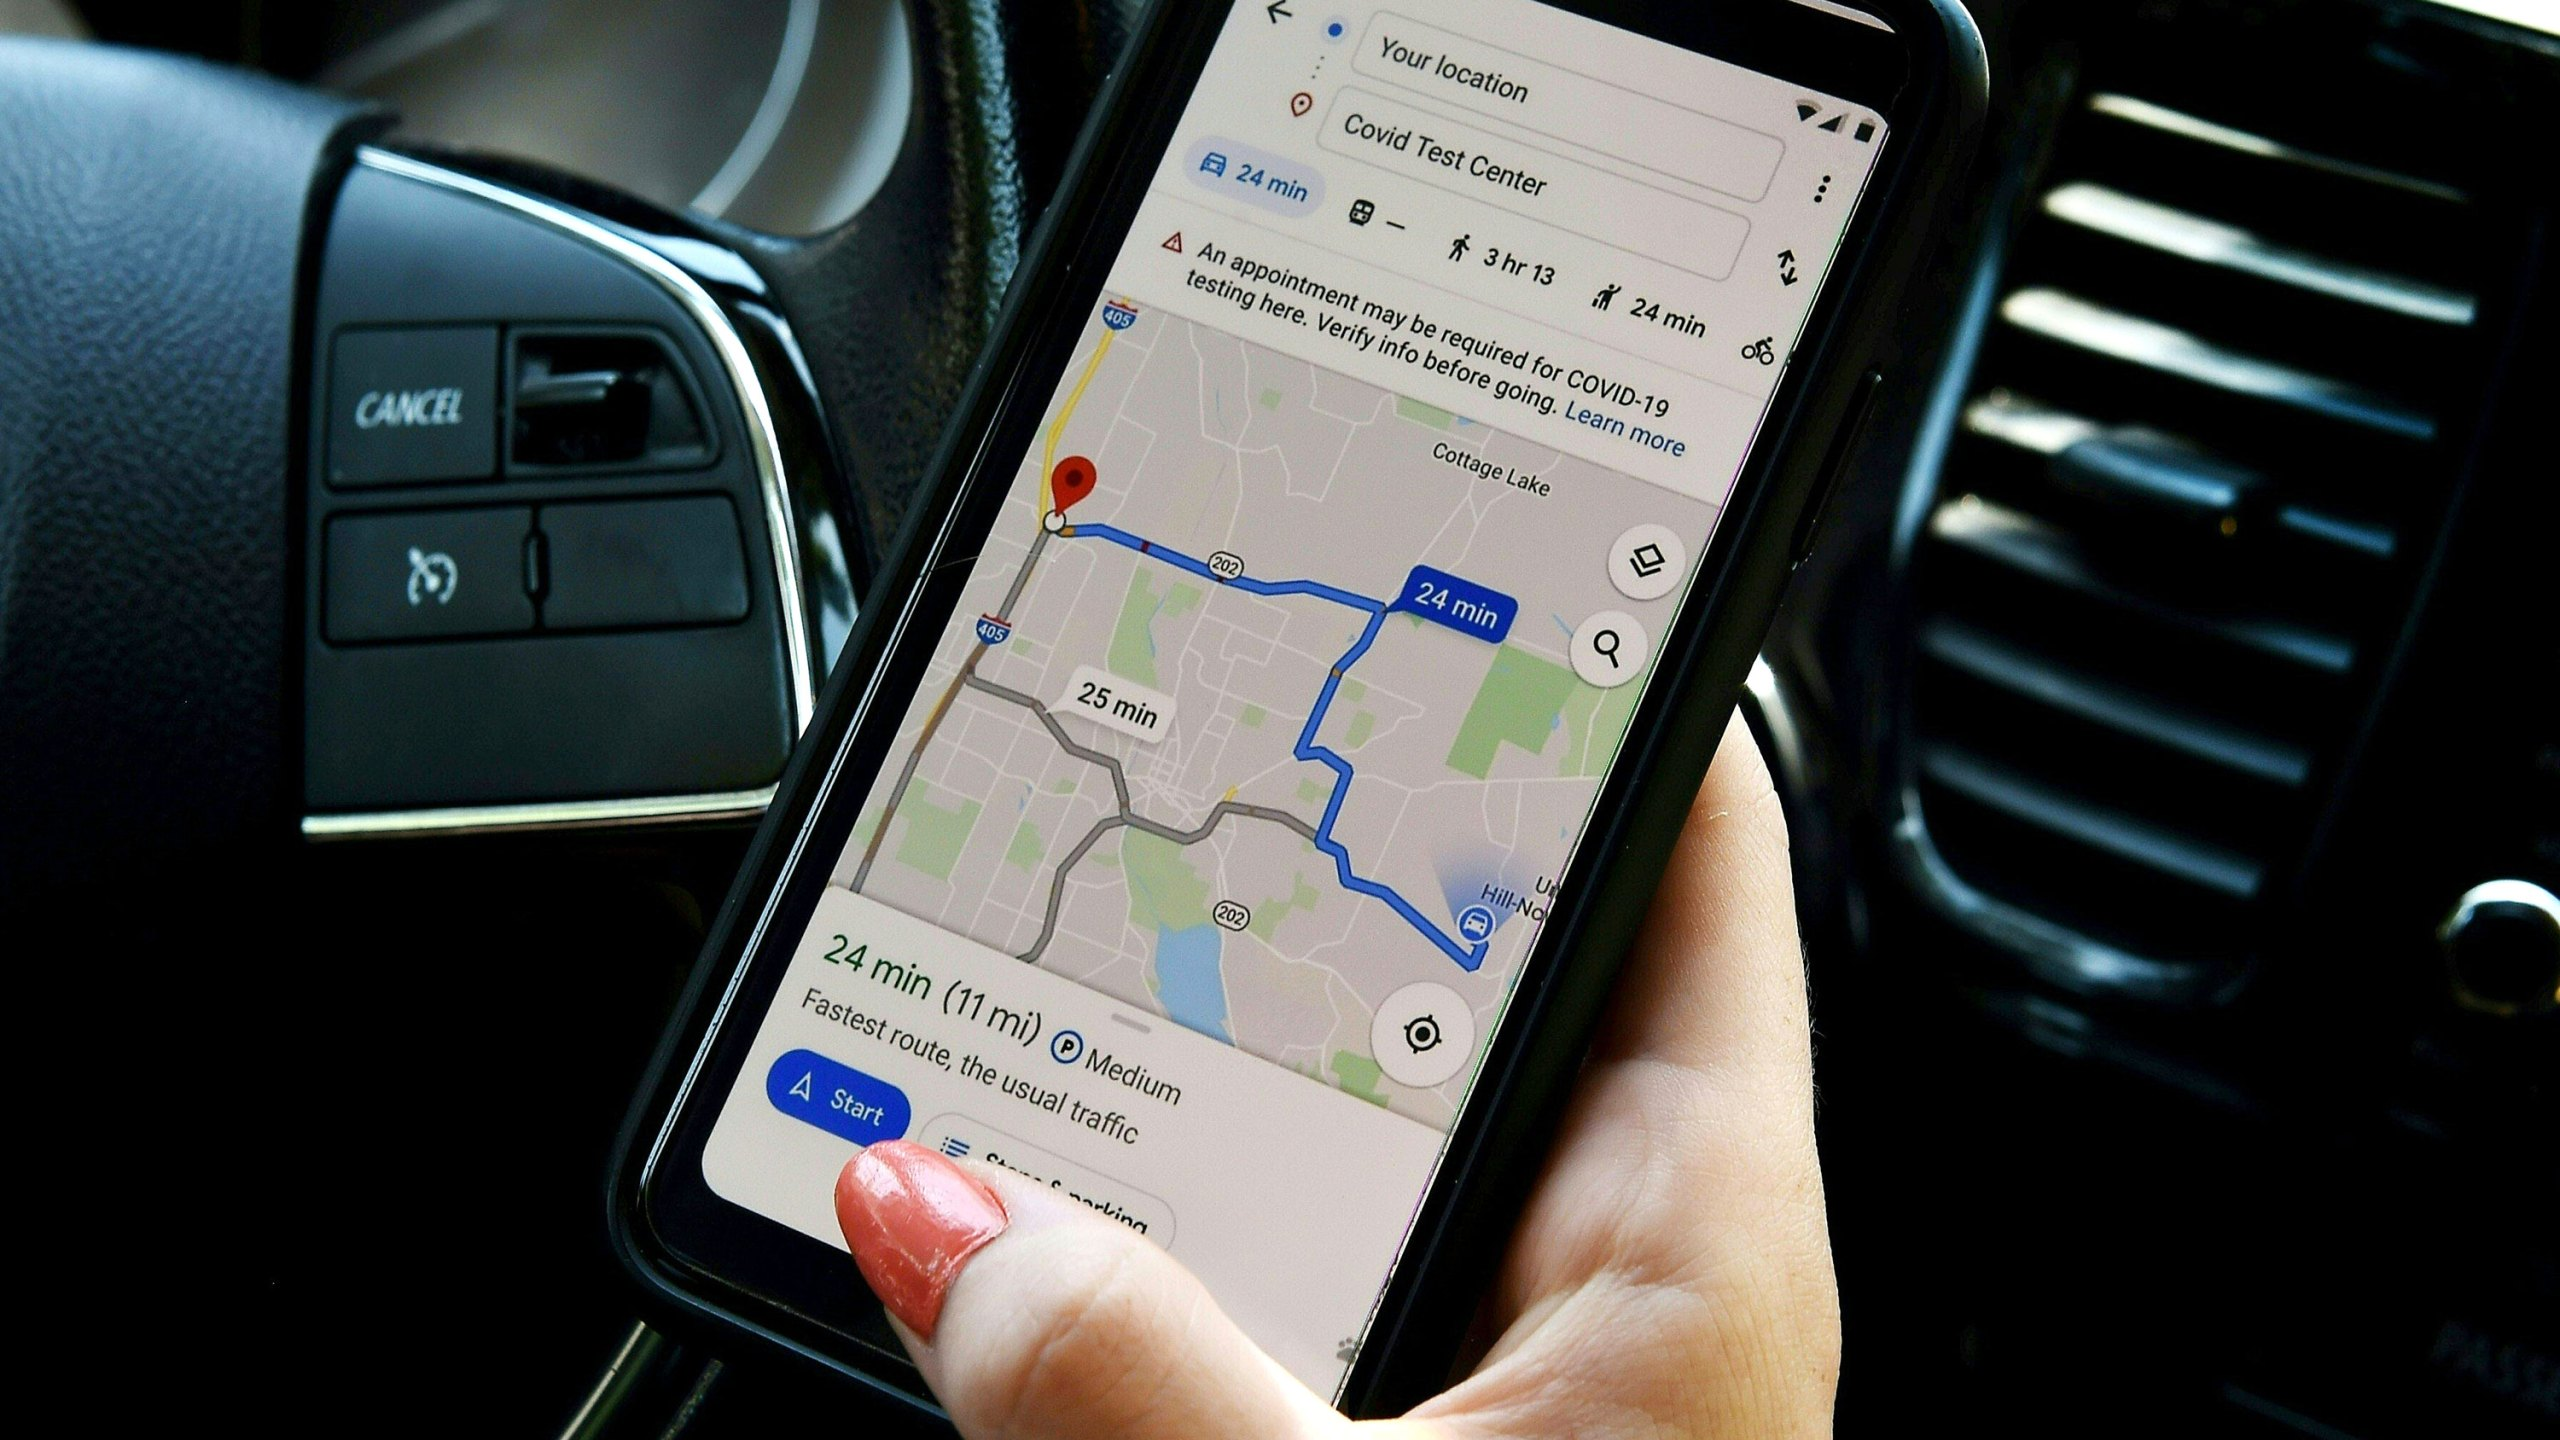 A Google map application displays a medical facility on a smartphone in Arlington, Virginia on June 9, 2020. (OLIVIER DOULIERY/AFP via Getty Images)